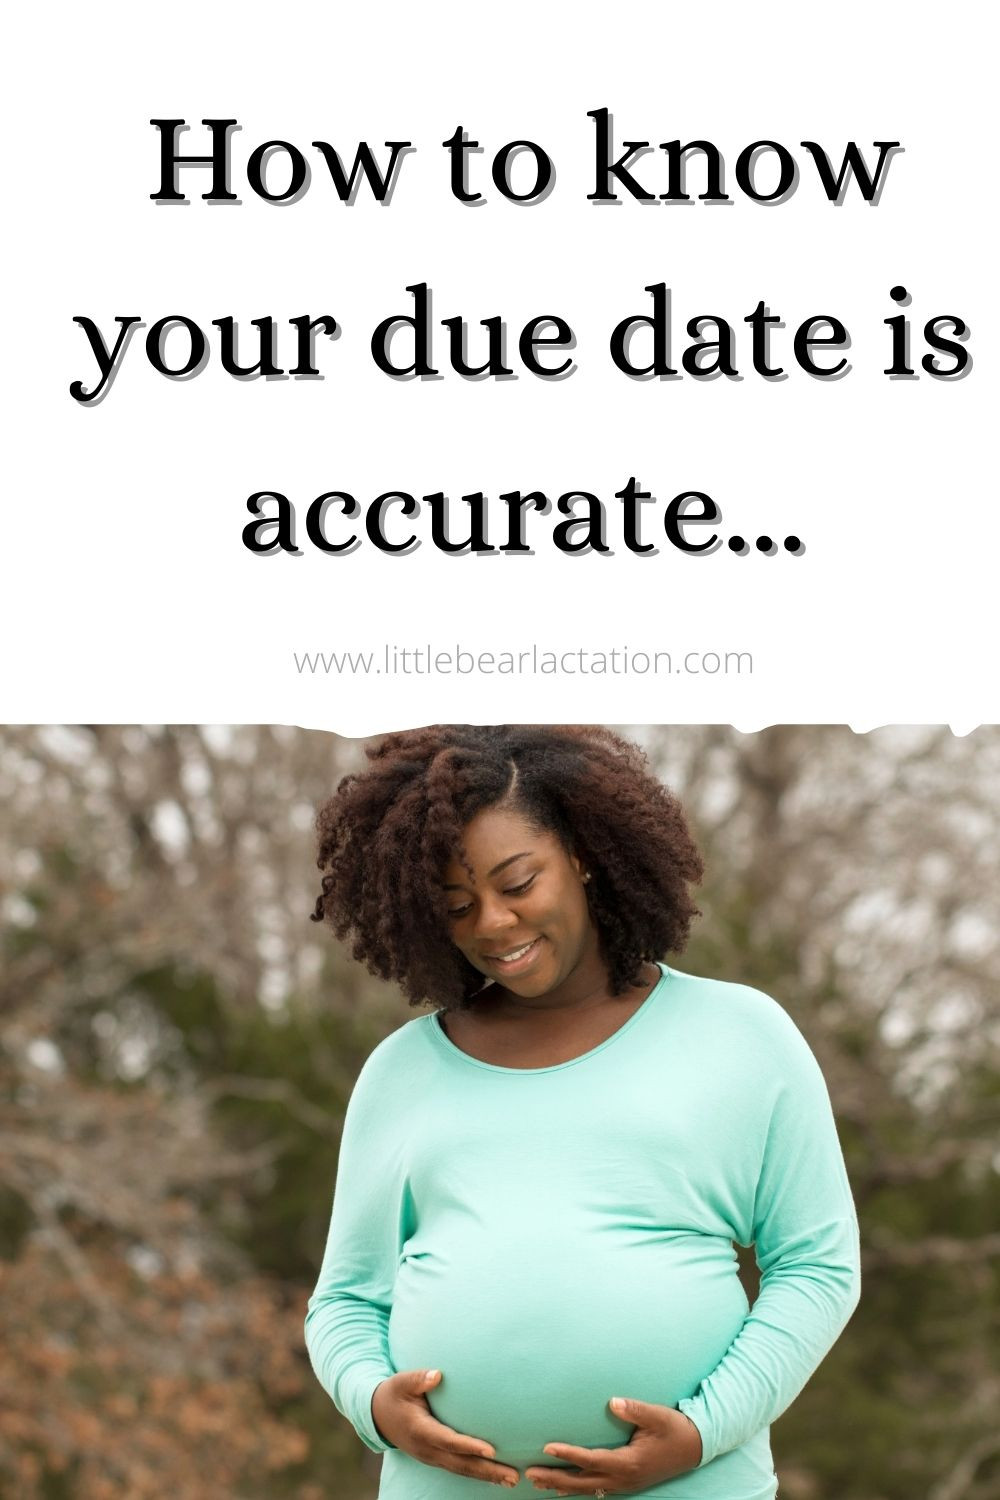 how to know your due date is accurate african american mother cradles pregnant belly digital doula virtual doula online childbirth support mommy blog pregnancy blog